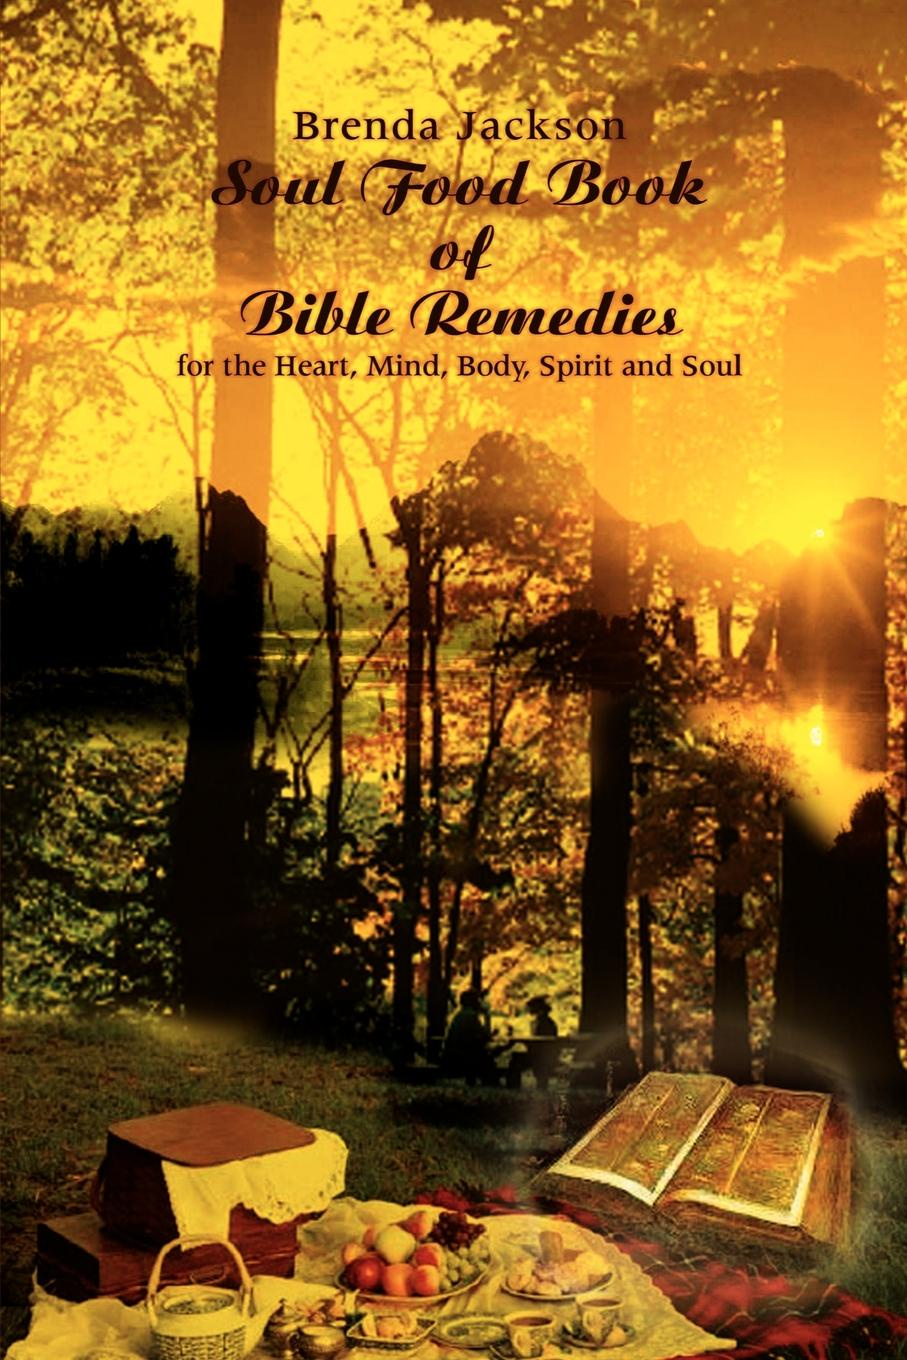 лучшая цена Brenda Jackson Soul Food Book of Bible Remedies. For the Heart, Mind, Body, Spirit and Soul